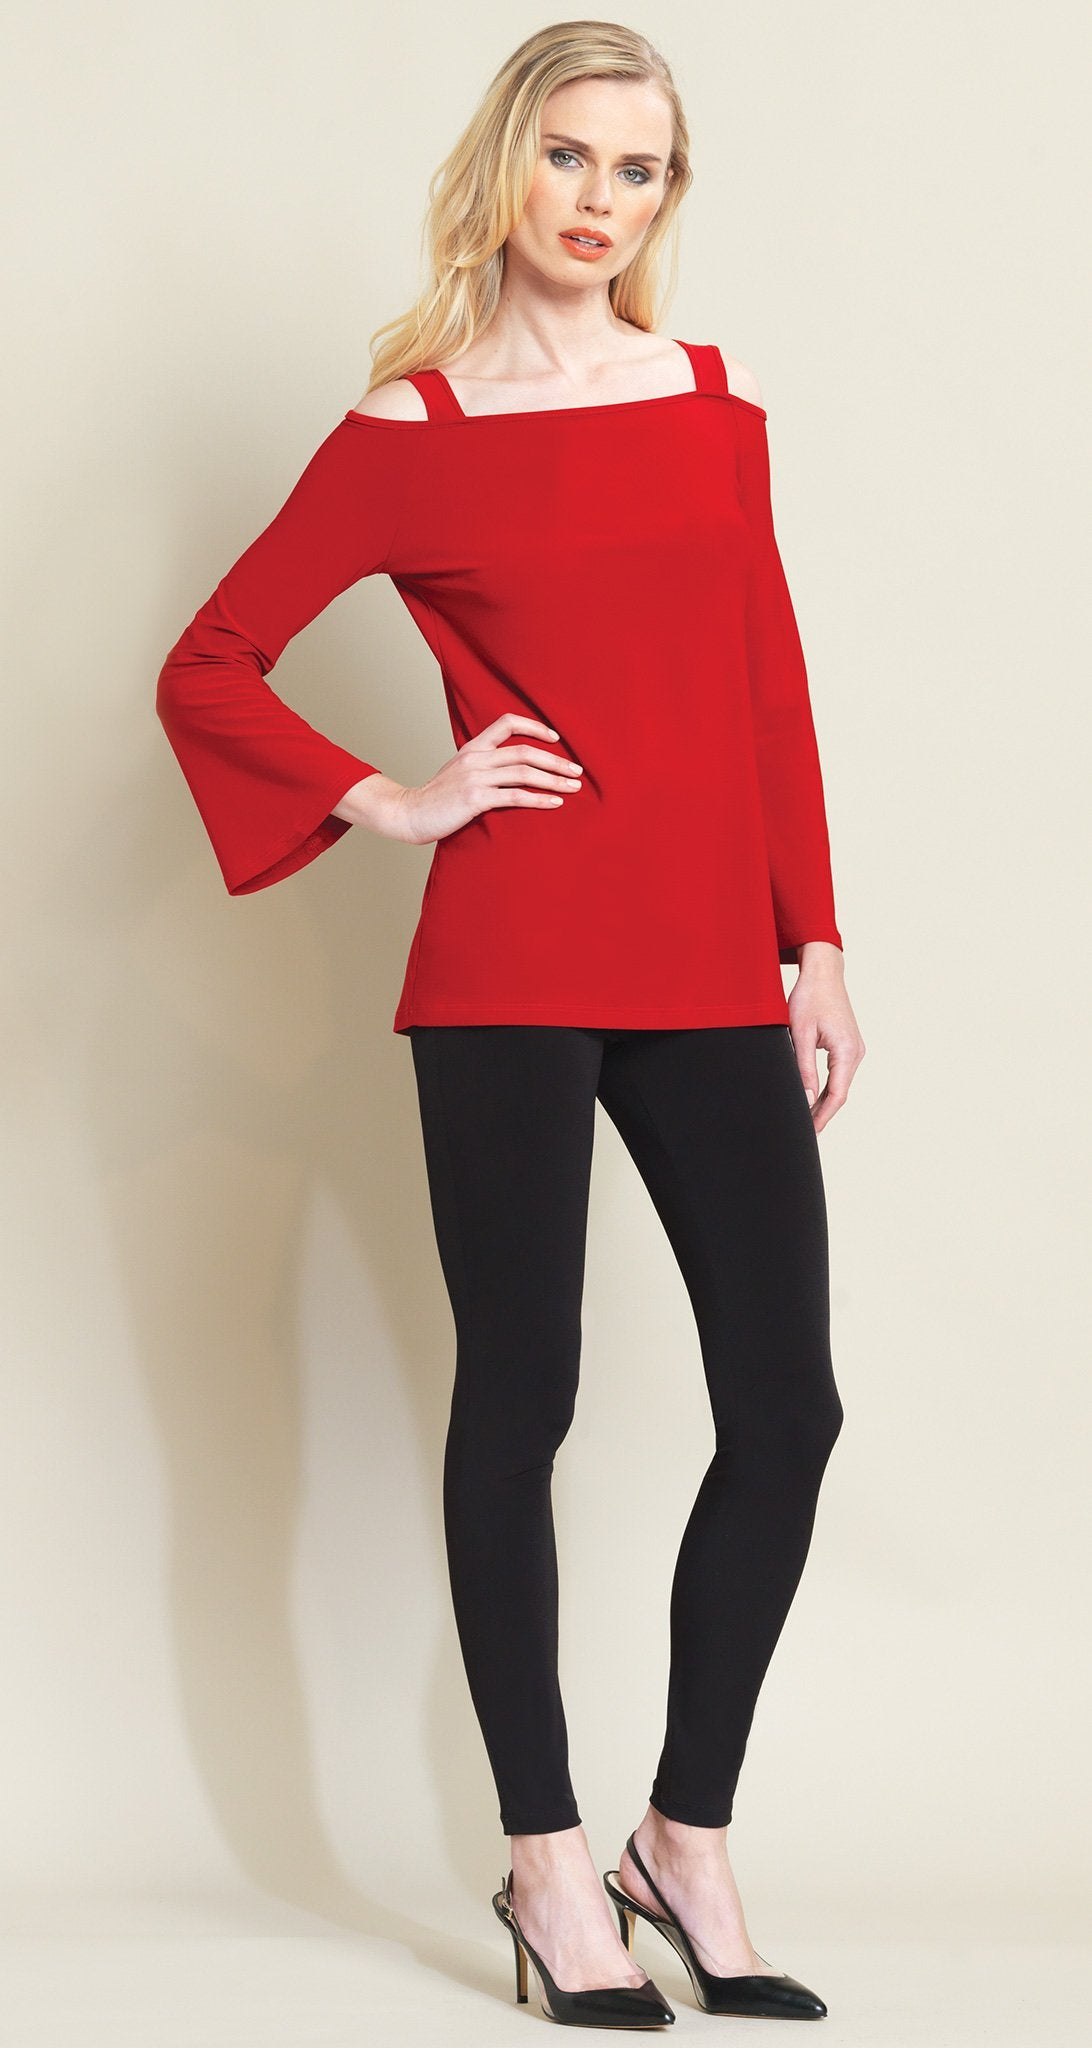 Open Shoulder Bell Sleeve Top - Red - Limited Sizes! - Clara Sunwoo